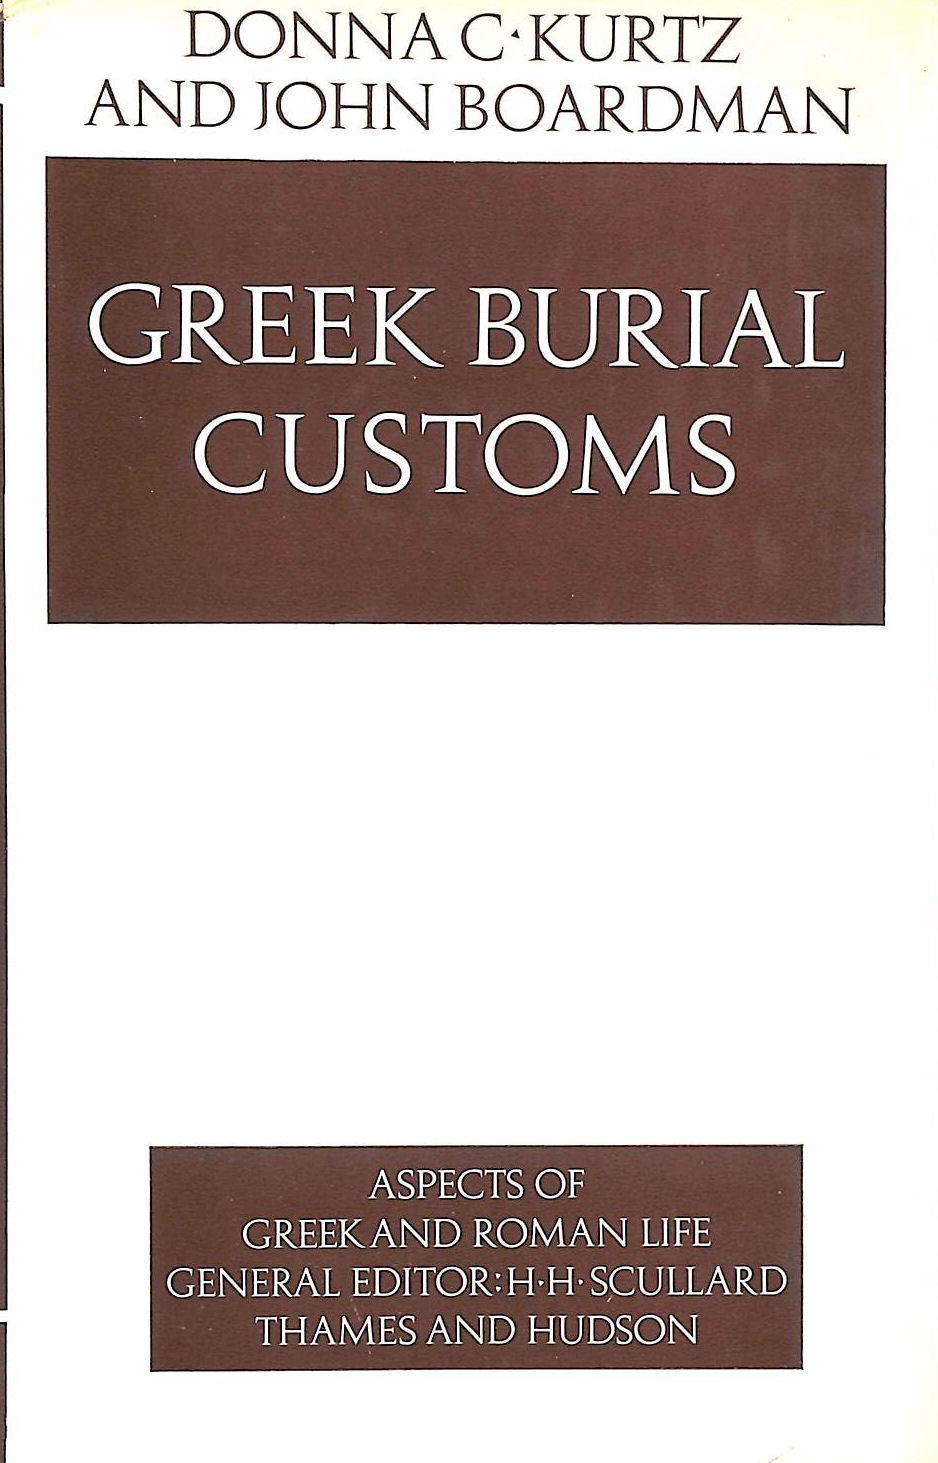 Image for Greek Burial Customs (Aspects of Greek and Roman Life)